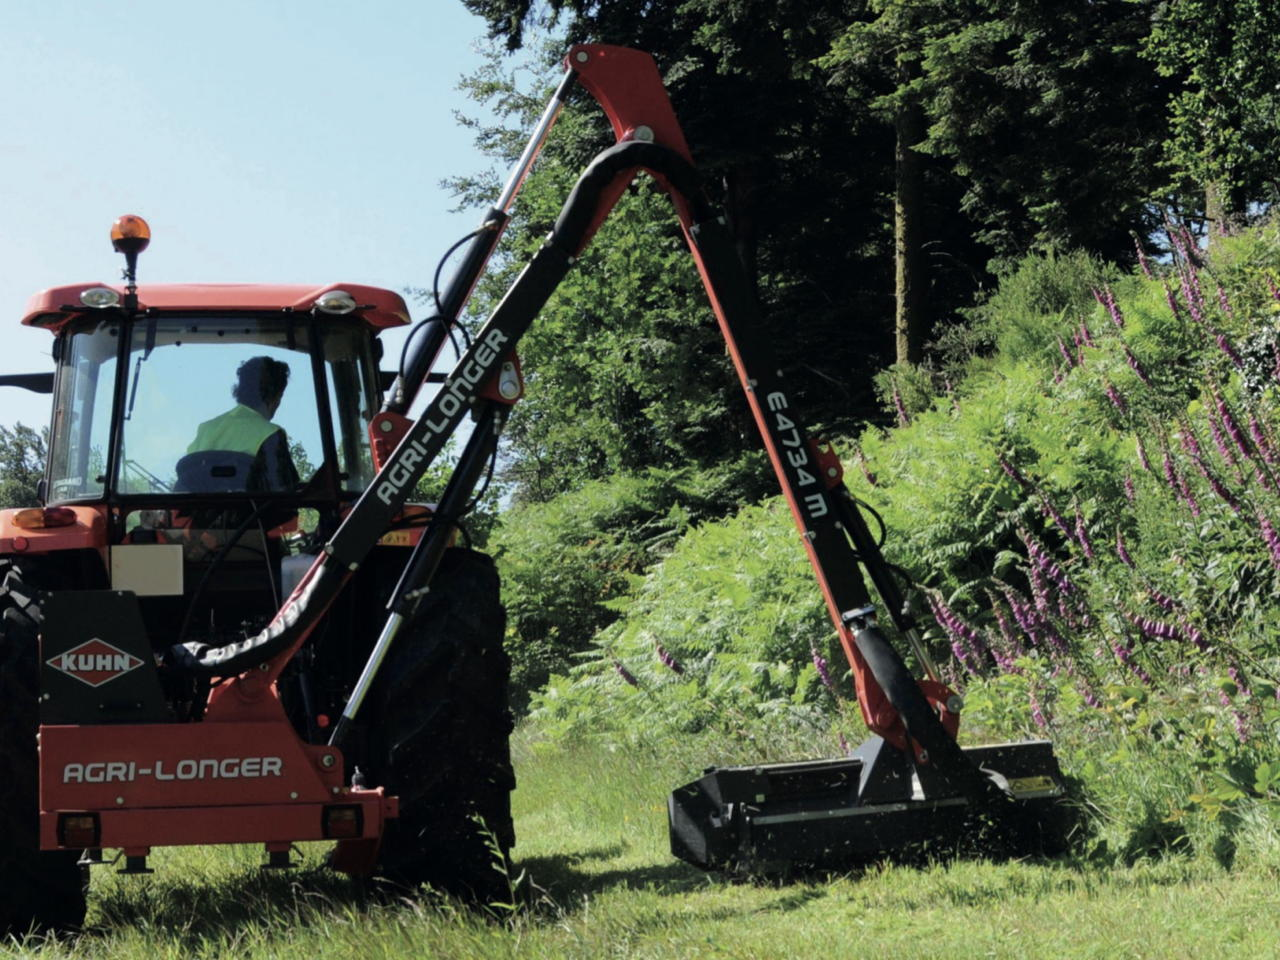 Kuhn Agri-Longer